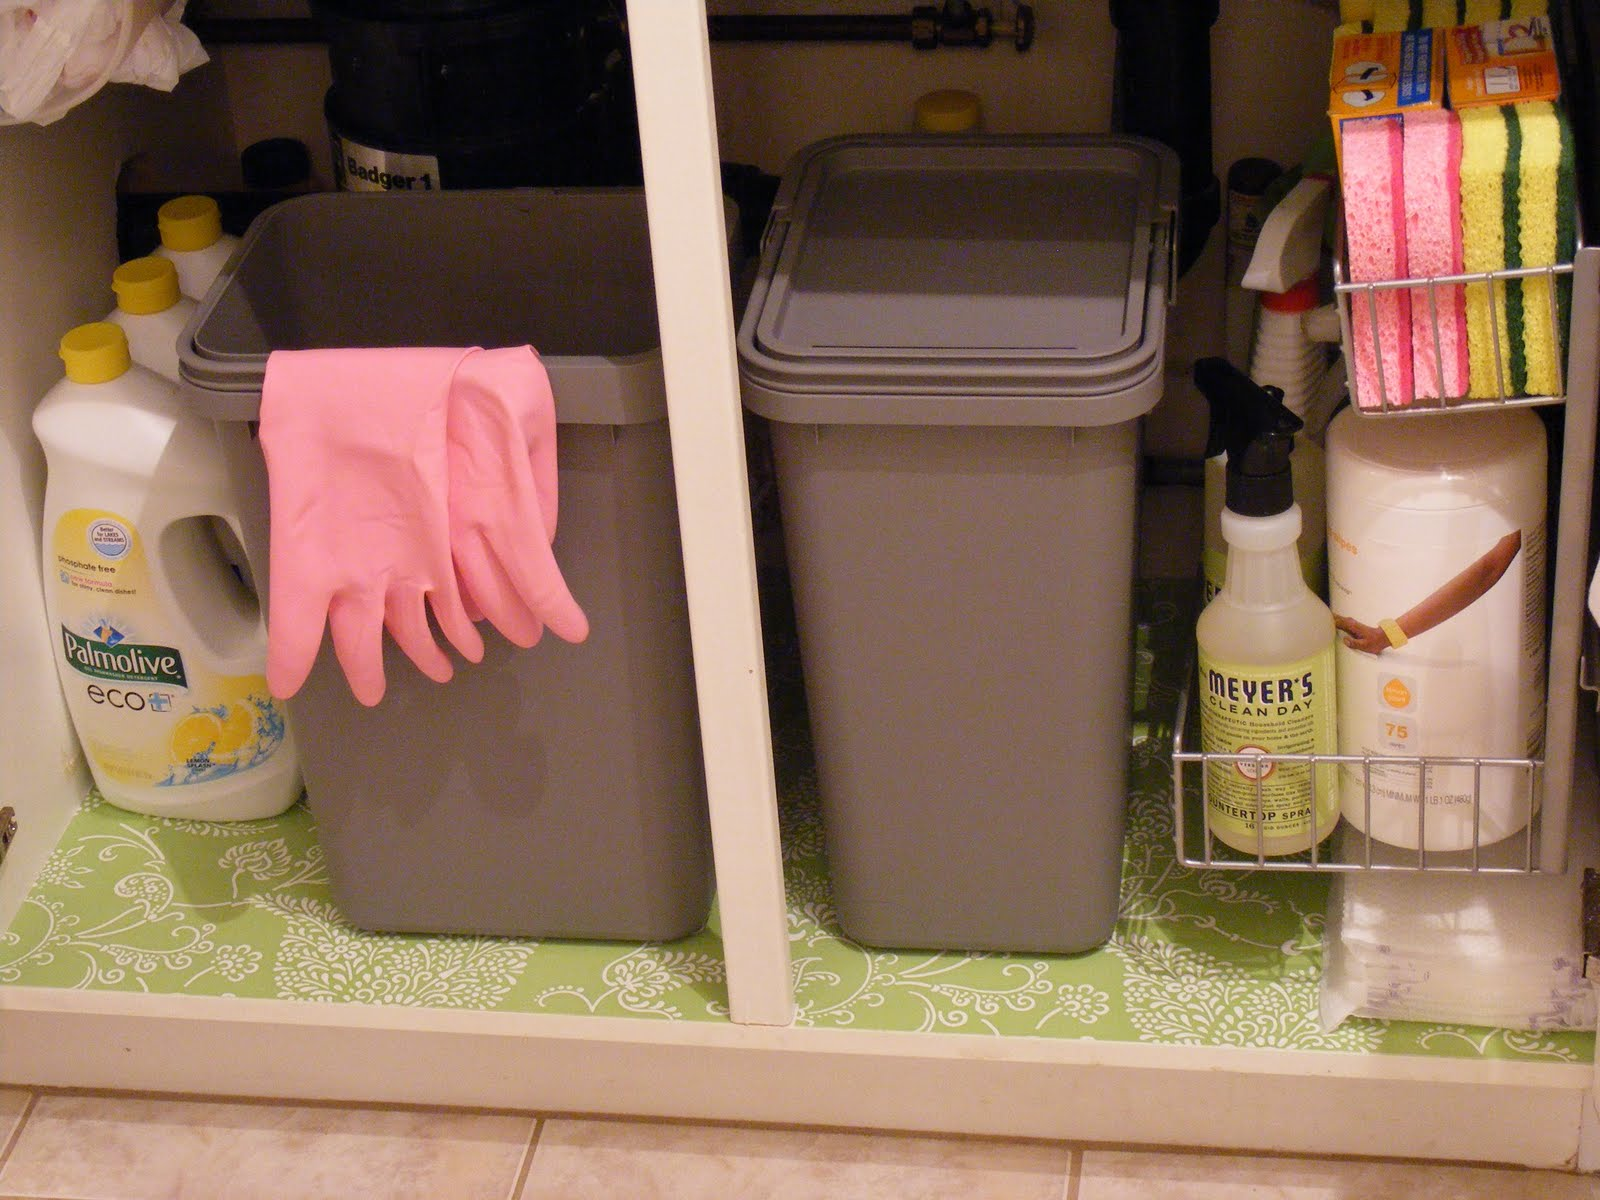 Kitchen sink organization photo - 1